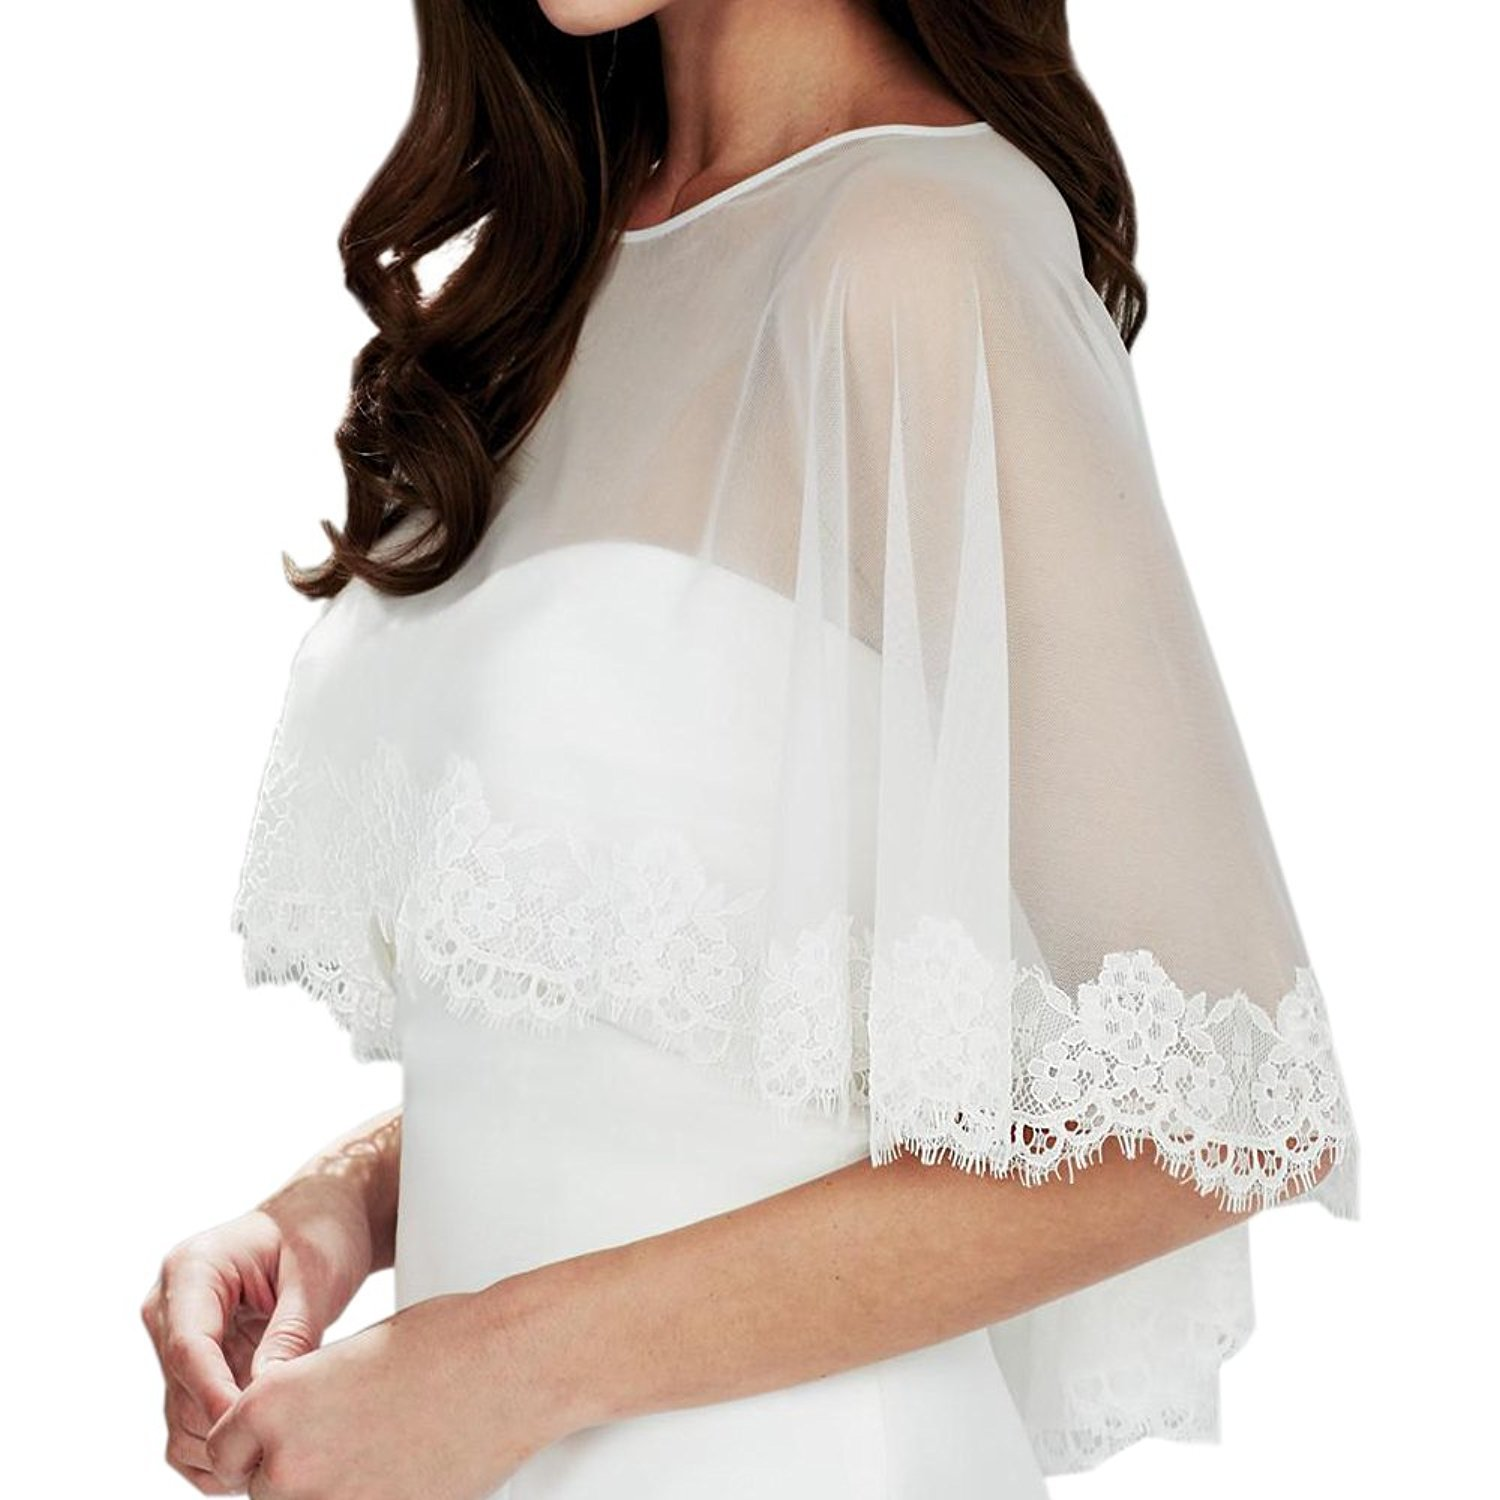 AbaoWedding Embroidered Lace Tulle Shrug Shawl Wrap Bolero Wedding Jacket for Bride Size L Ivory